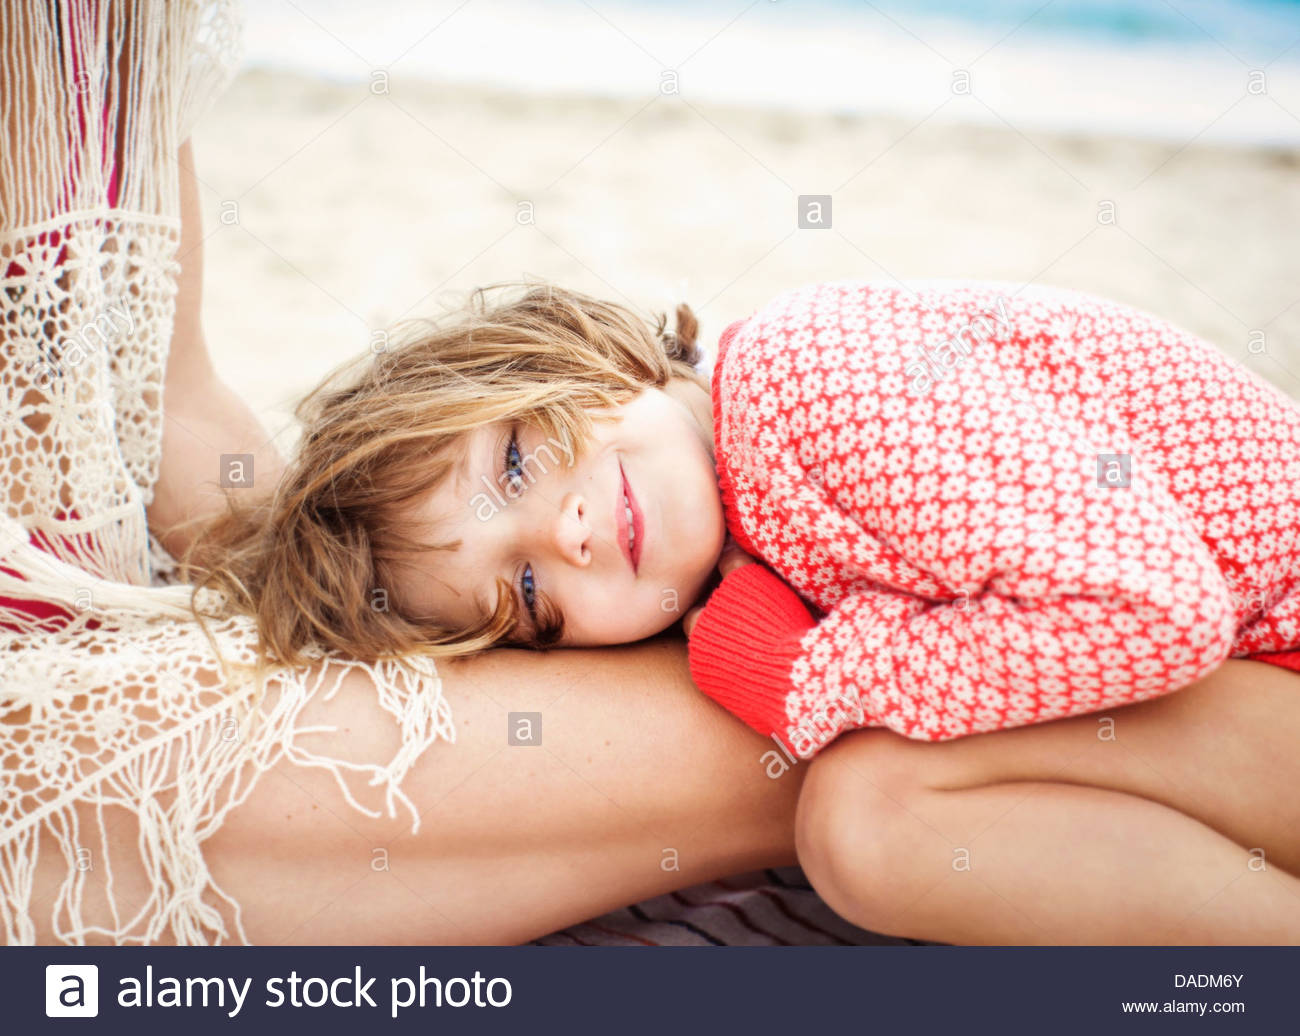 Child looking at camera resting head on mother's thigh - Stock Image